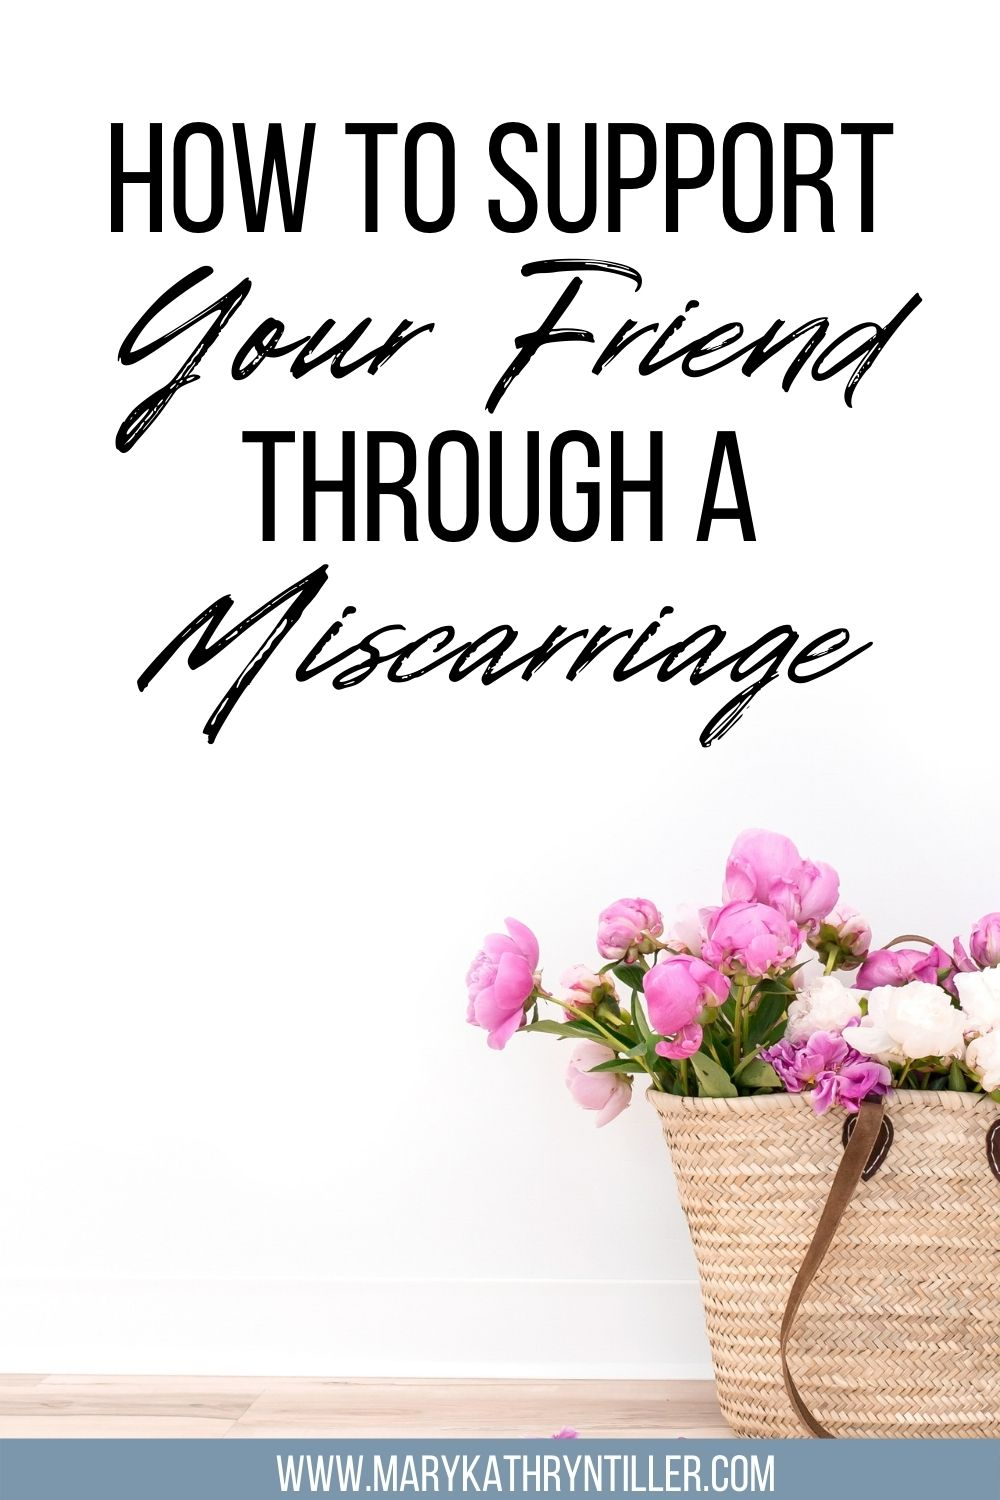 Supporting your friend through a miscarriage